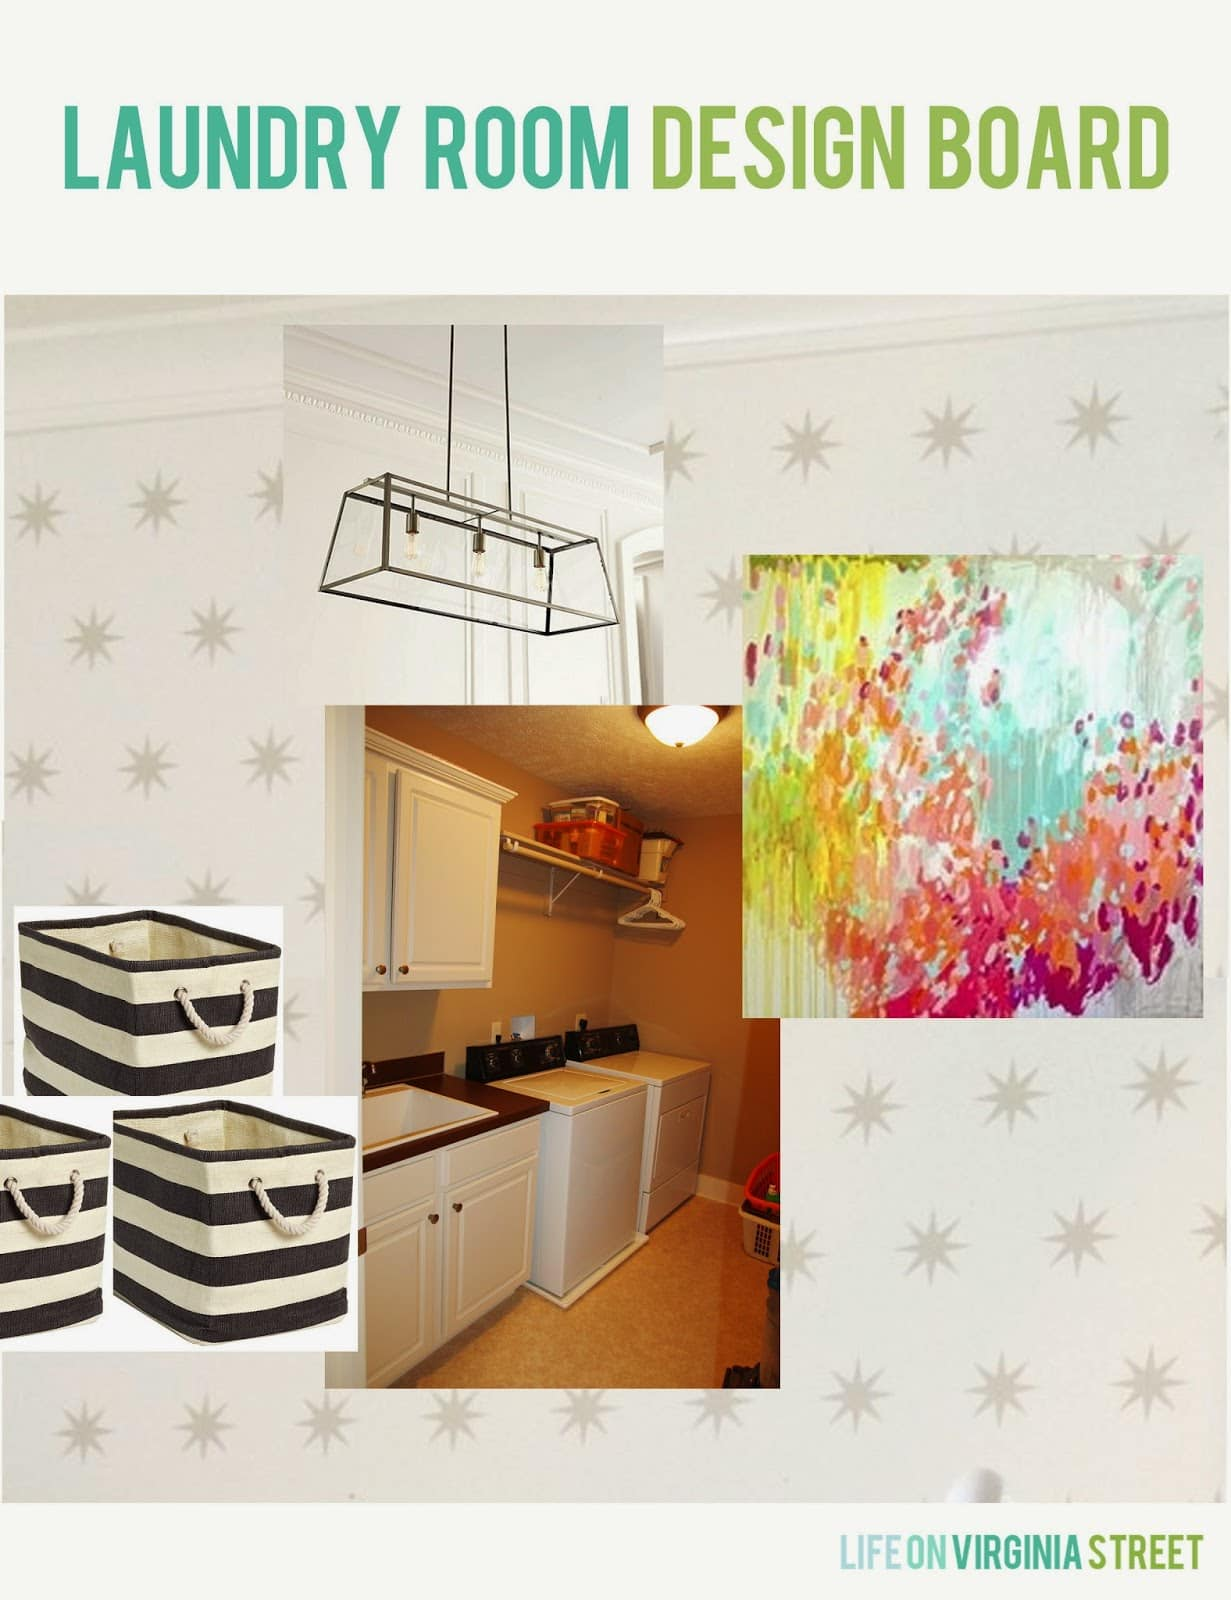 Bright and cheerful laundry room design board.